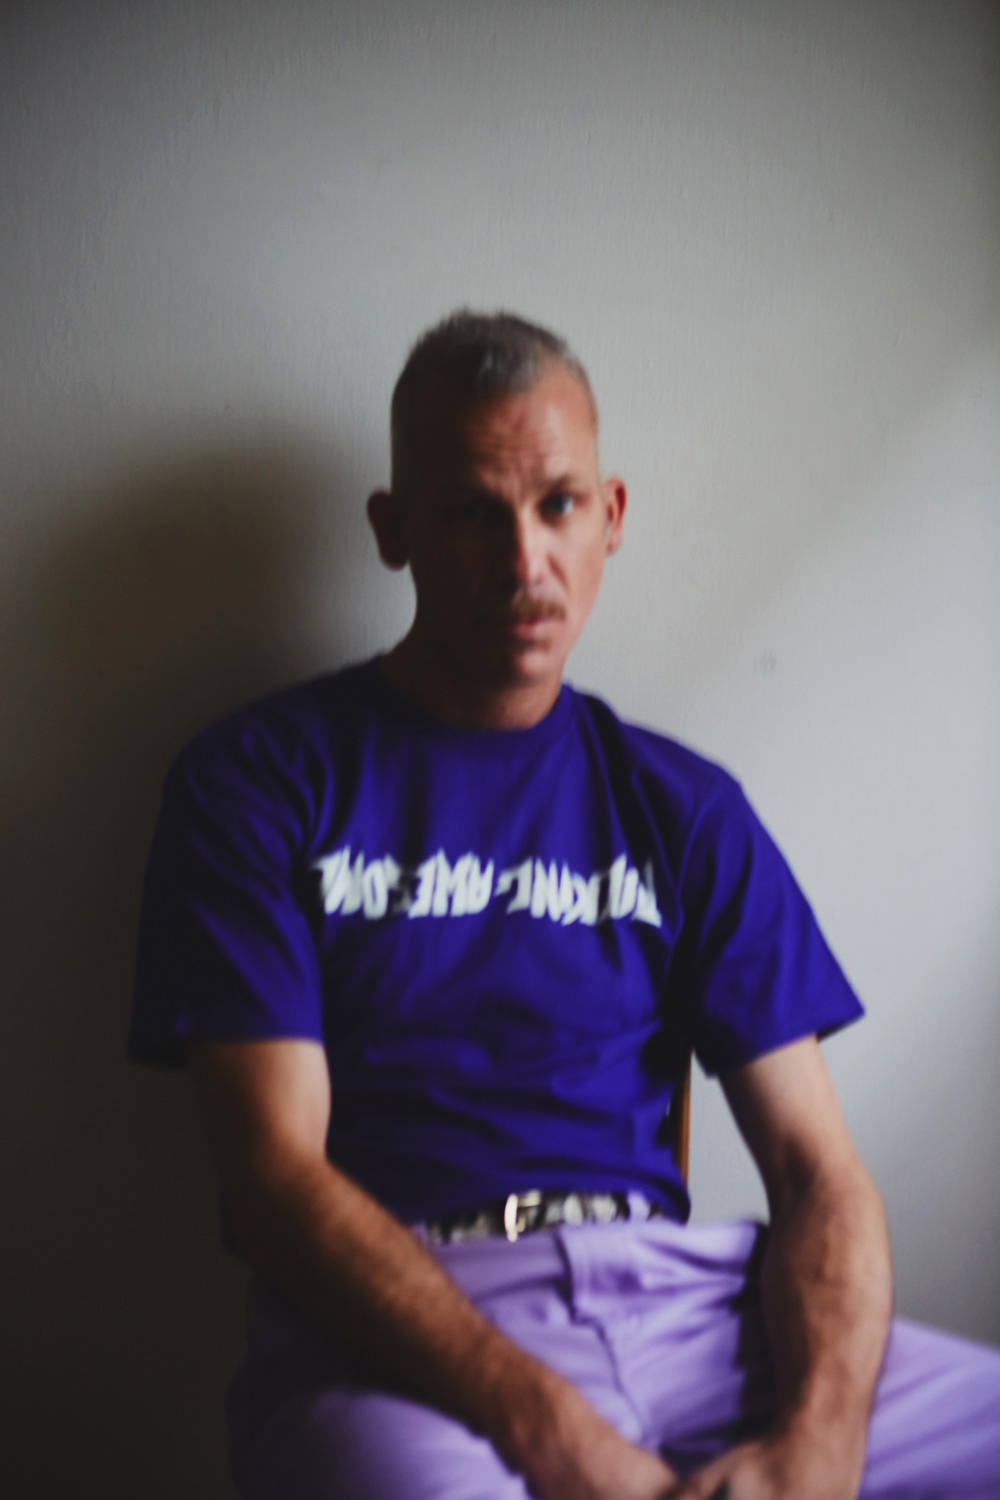 JASONDILL_FA_CURTISBUCHANAN_2.jpg